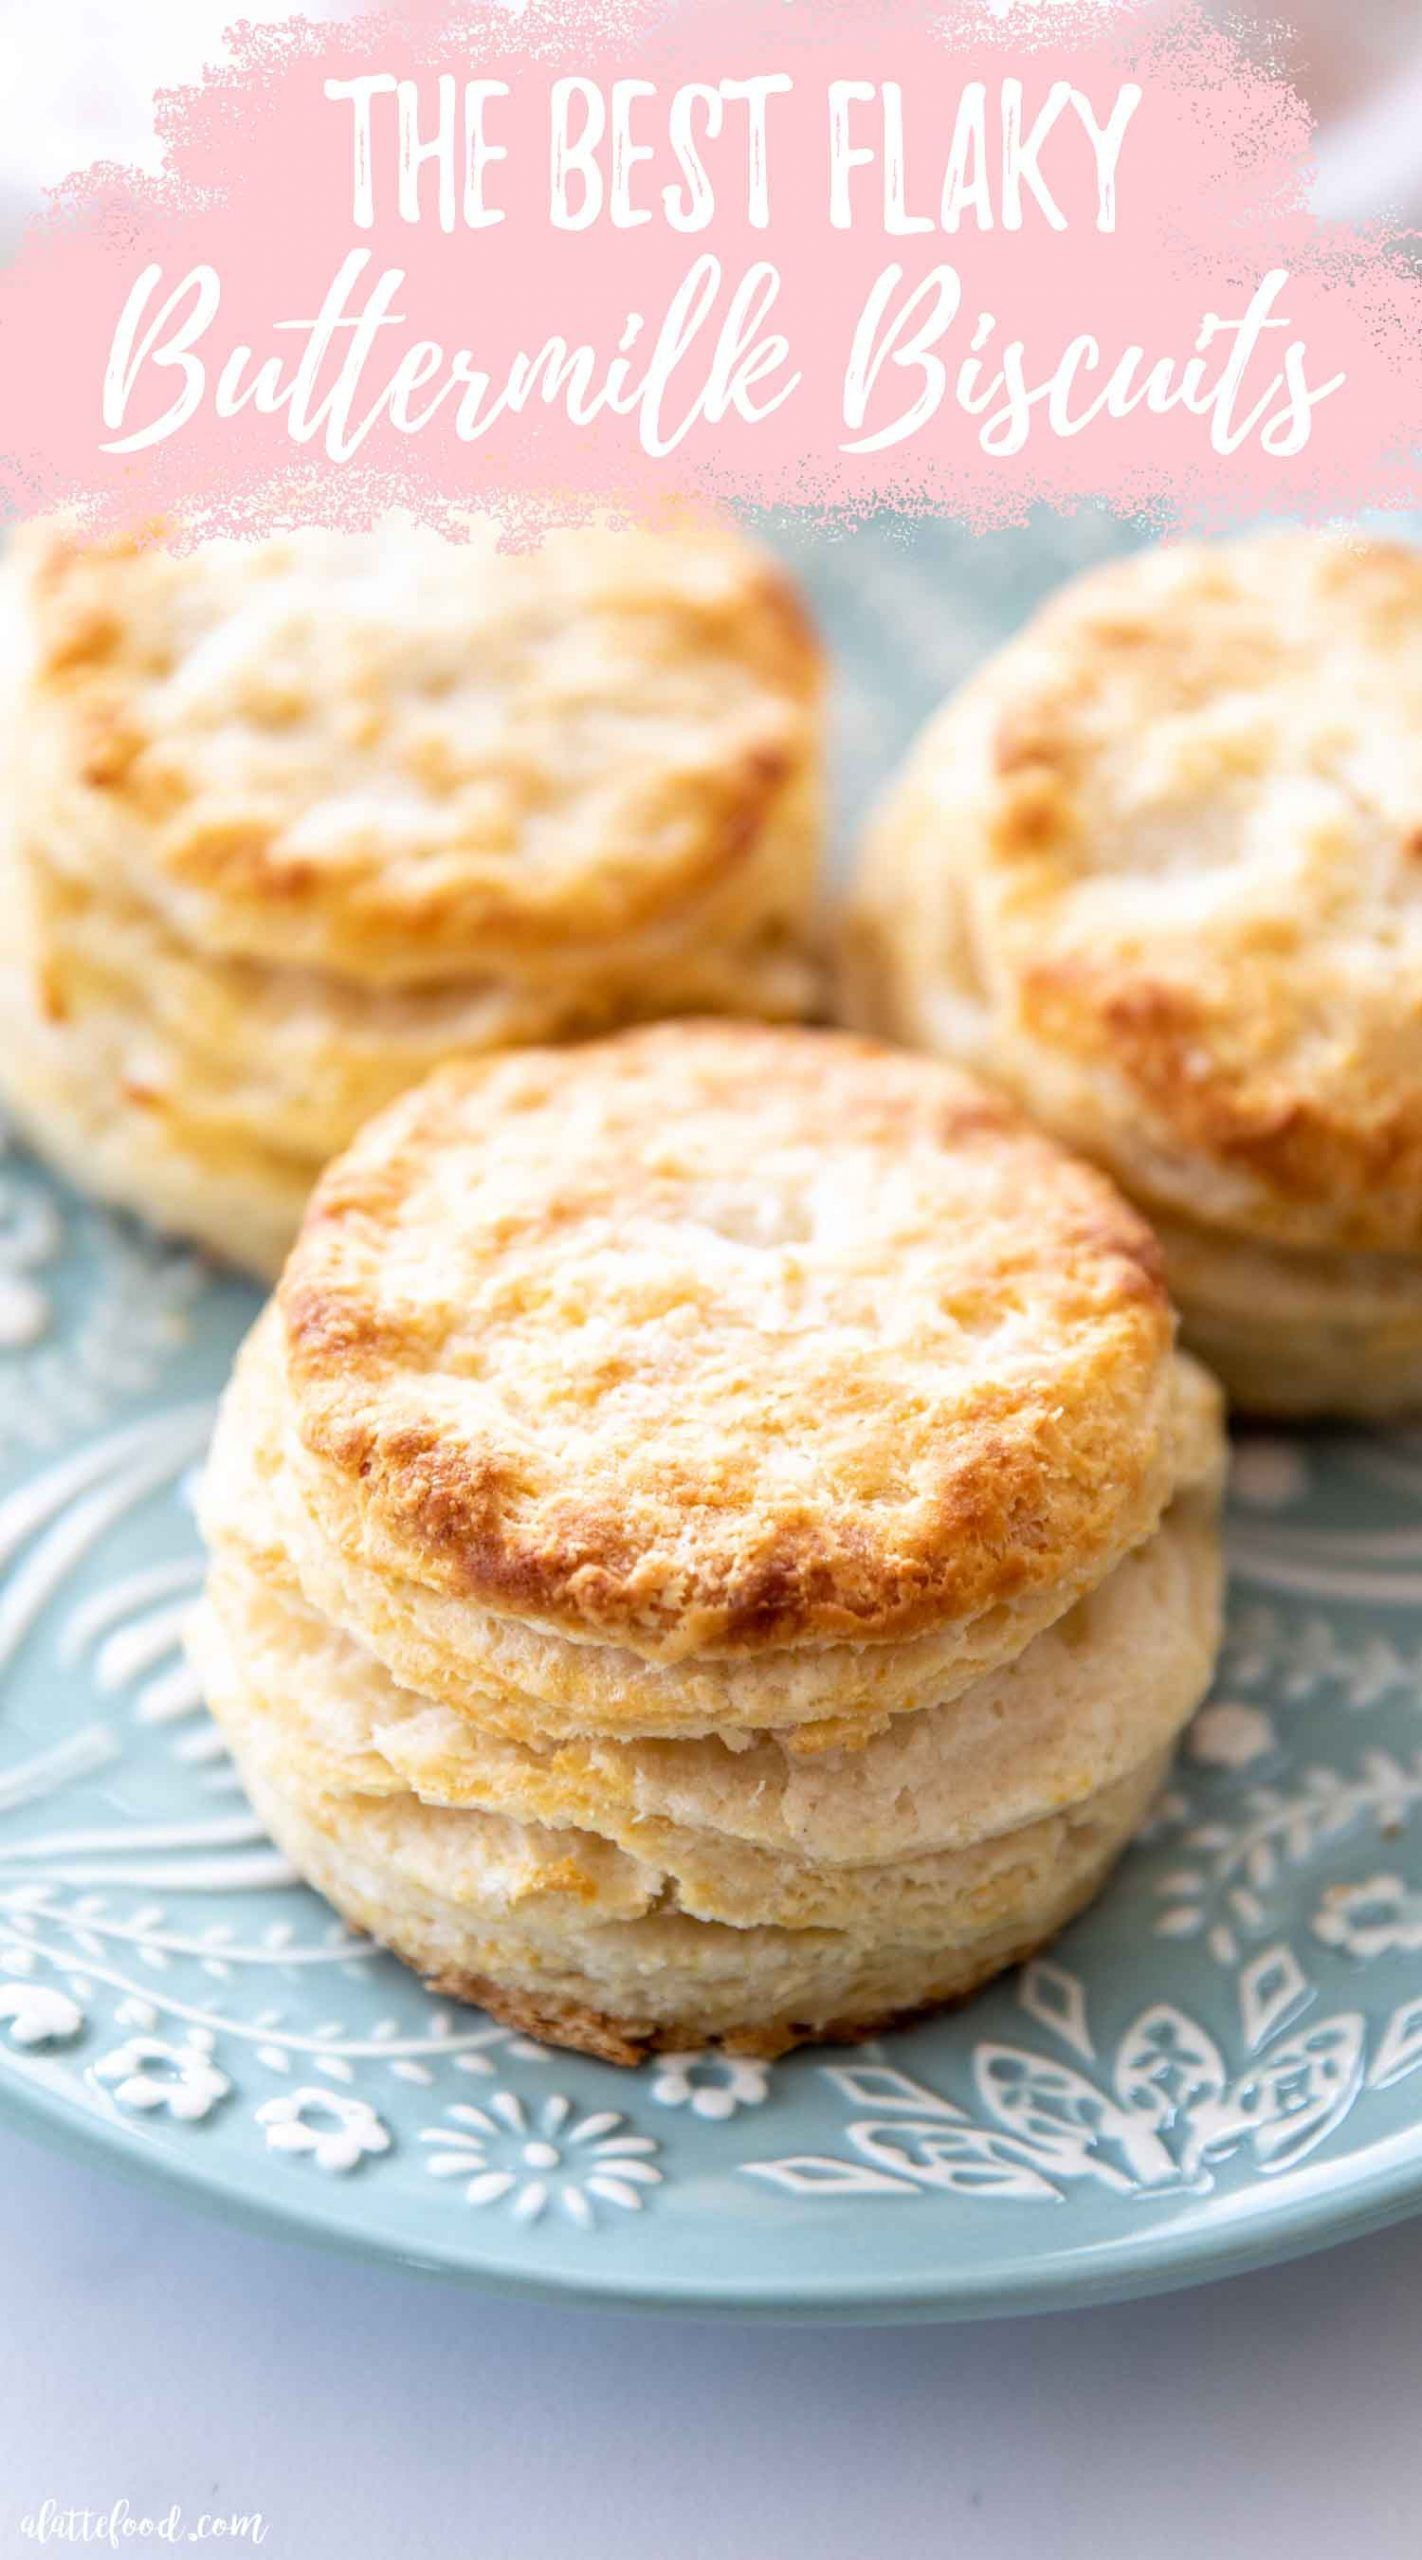 These Homemade Flaky Buttermilk Biscuits Are So Easy To Make These Southern Bi In 2020 Buttermilk Biscuits Recipe Flaky Buttermilk Biscuits Recipe Easy Baking Recipes